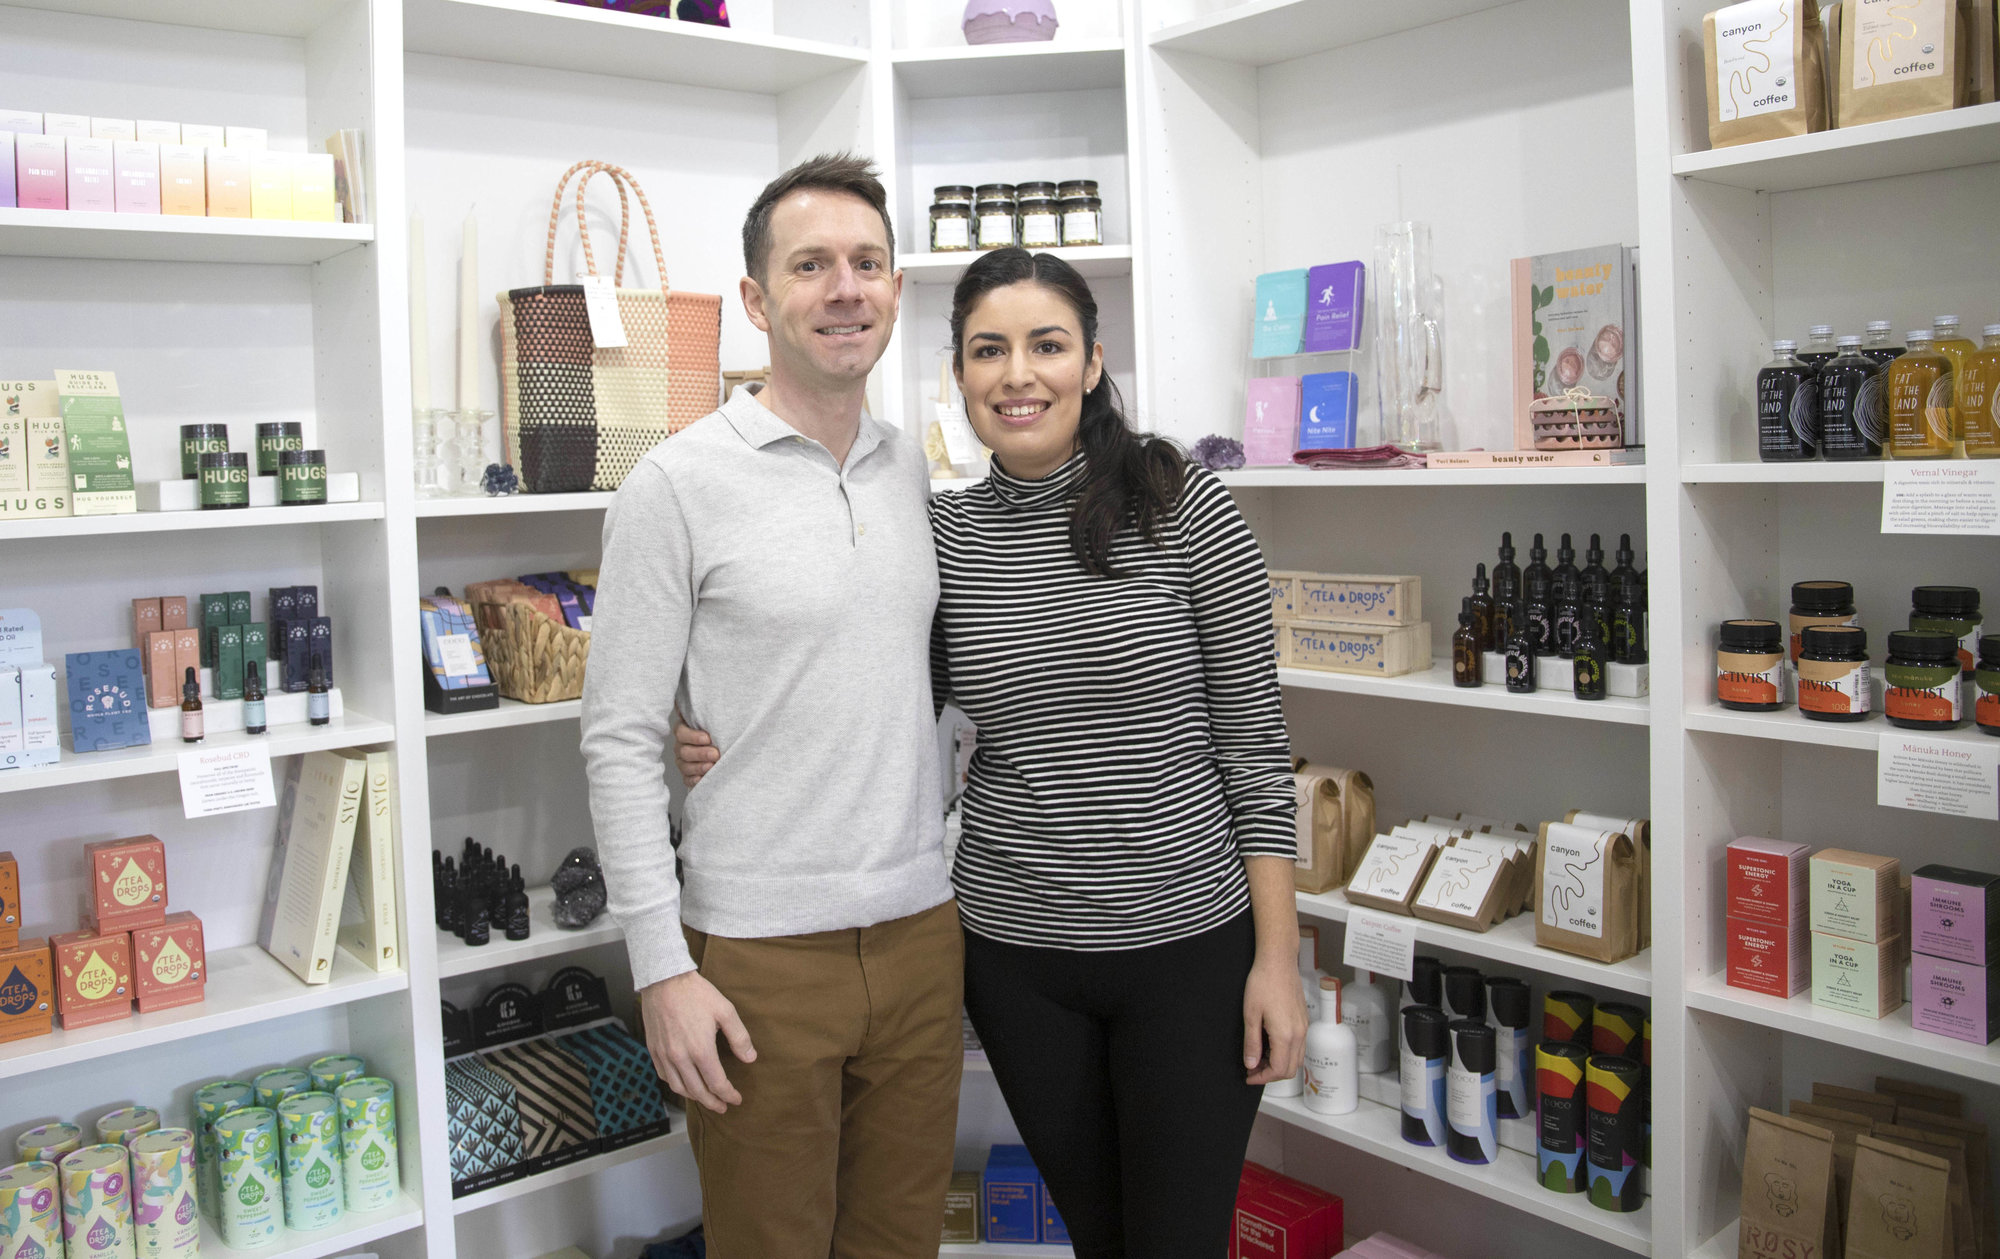 The Bloomwell owners Zach Wasmer (left) and Johanna Baena bring all-natural products to downtown Ithaca.